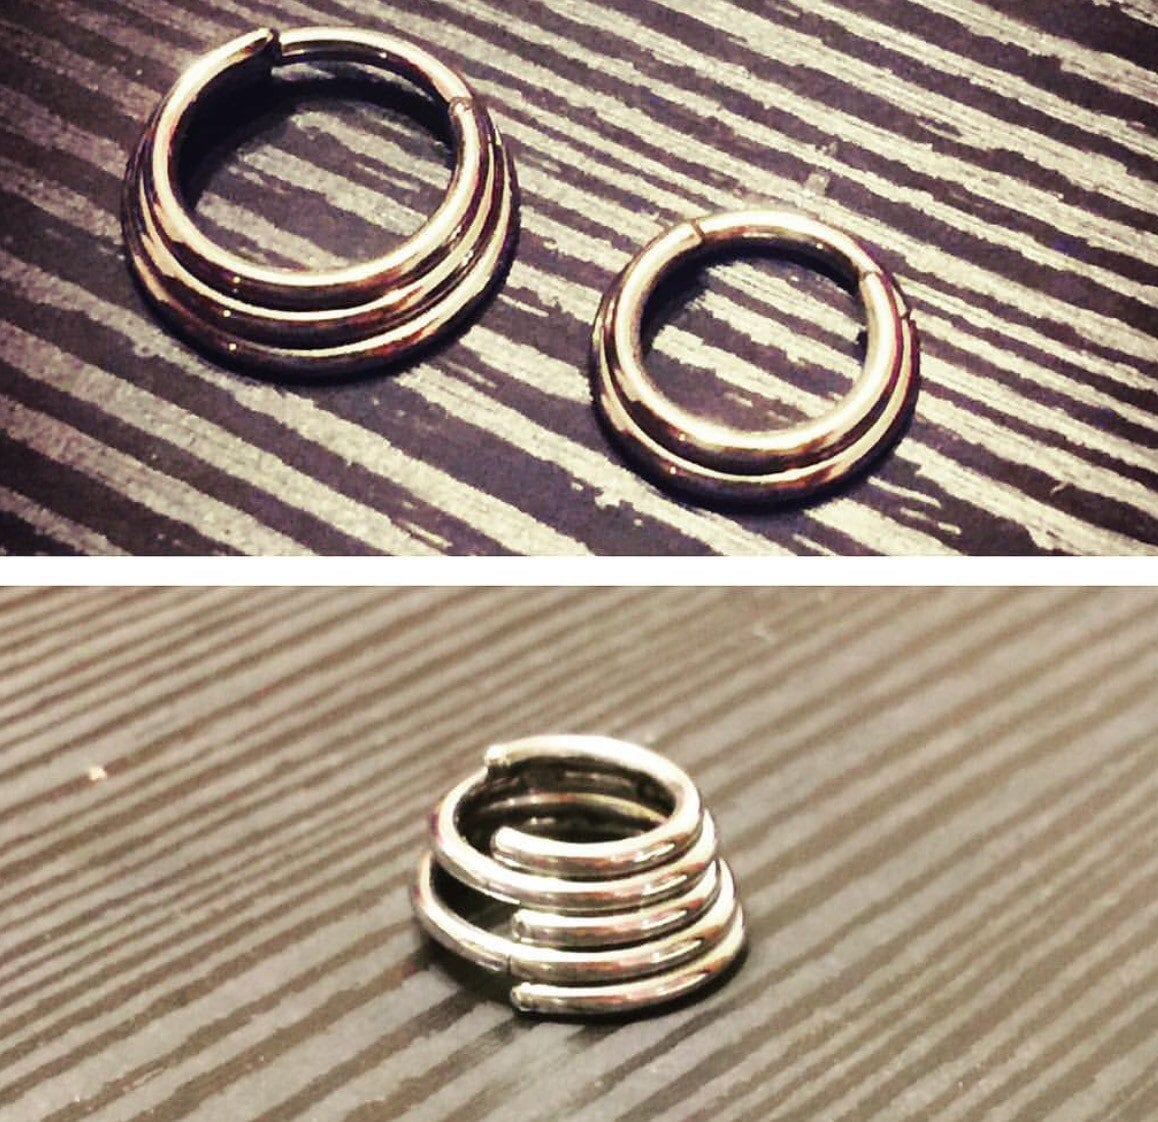 How To Take Out Hinged Septum Ring